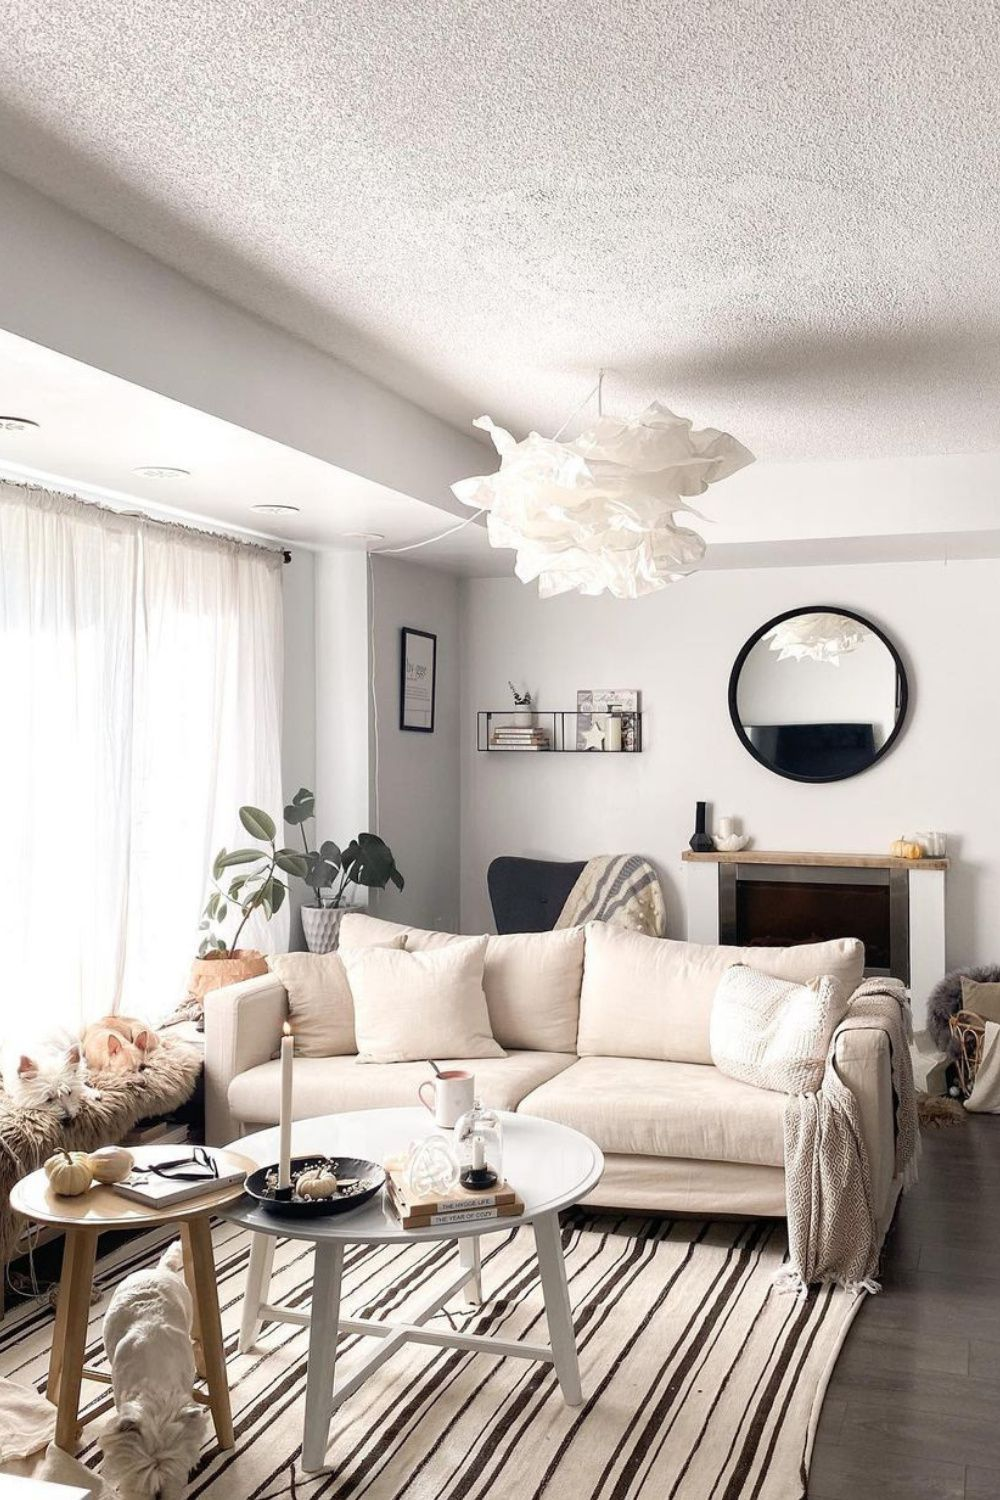 9 Reasons To Love The Scandinavian Aesthetic And How To Recreate It At Home Comfort Works Blog Design Inspirations In 2020 Living Room White Home Comforts Living Room